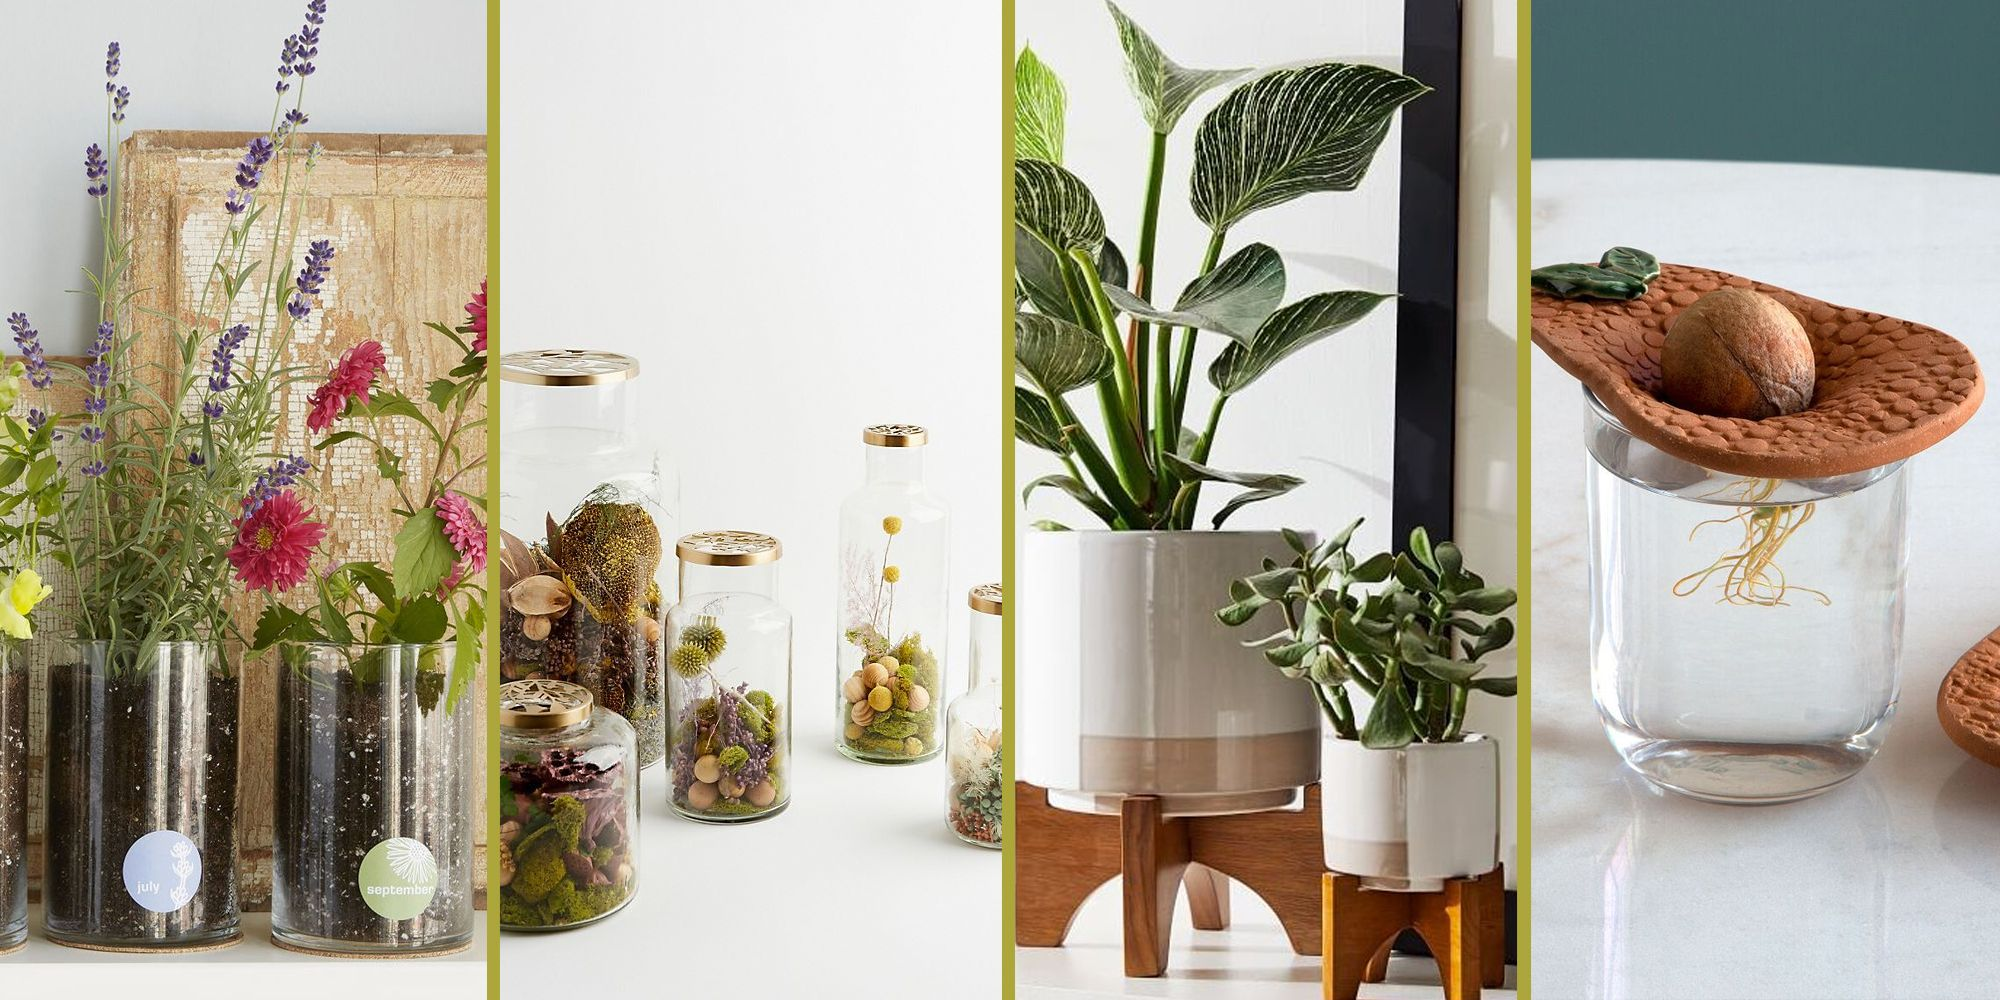 40 Best Gifts for Plant Lovers - Cute Plant Gift Ideas 2021